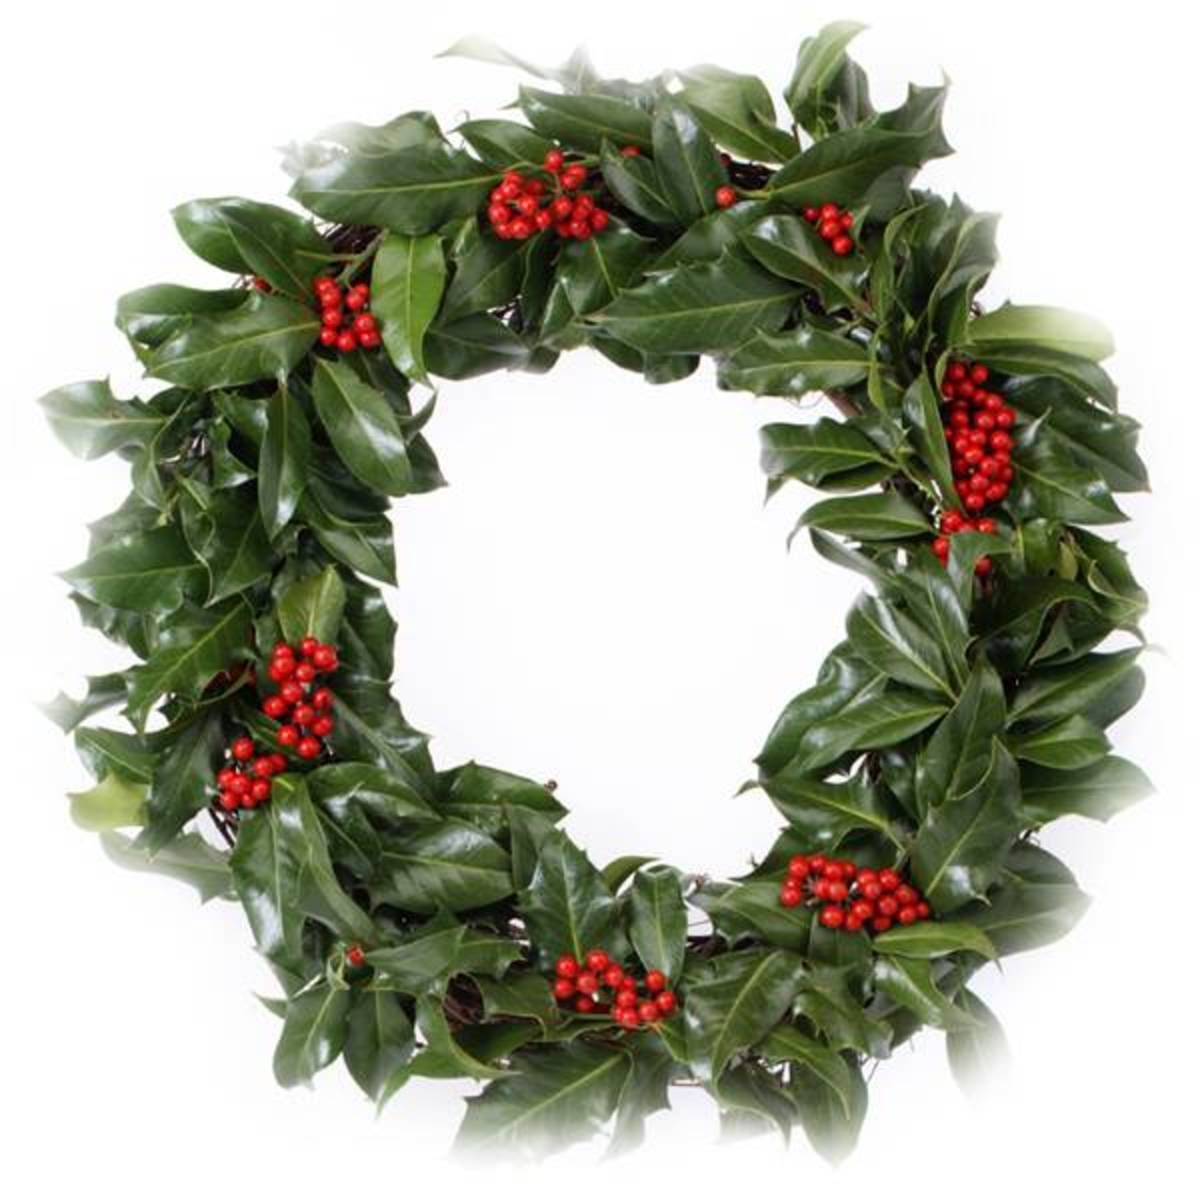 Holly Wreath Photo Source: http://www.bigbunch.co.uk/images